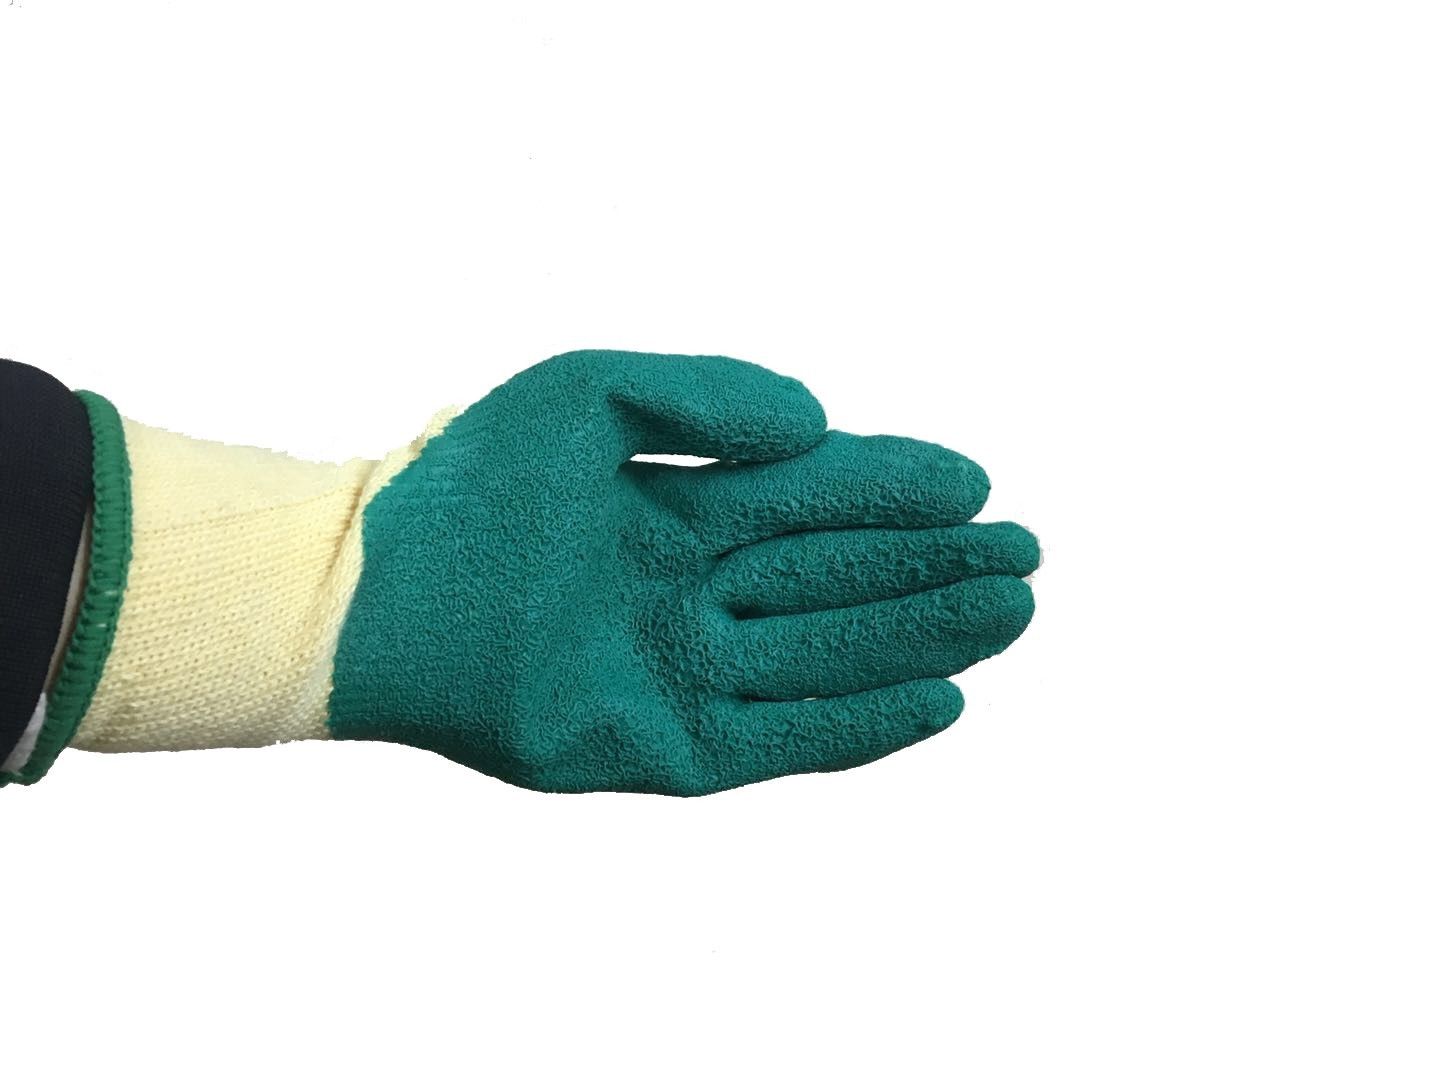 90g Gardening Machines Latex Glove With 13 Gauge Of Cotton Material For Construction